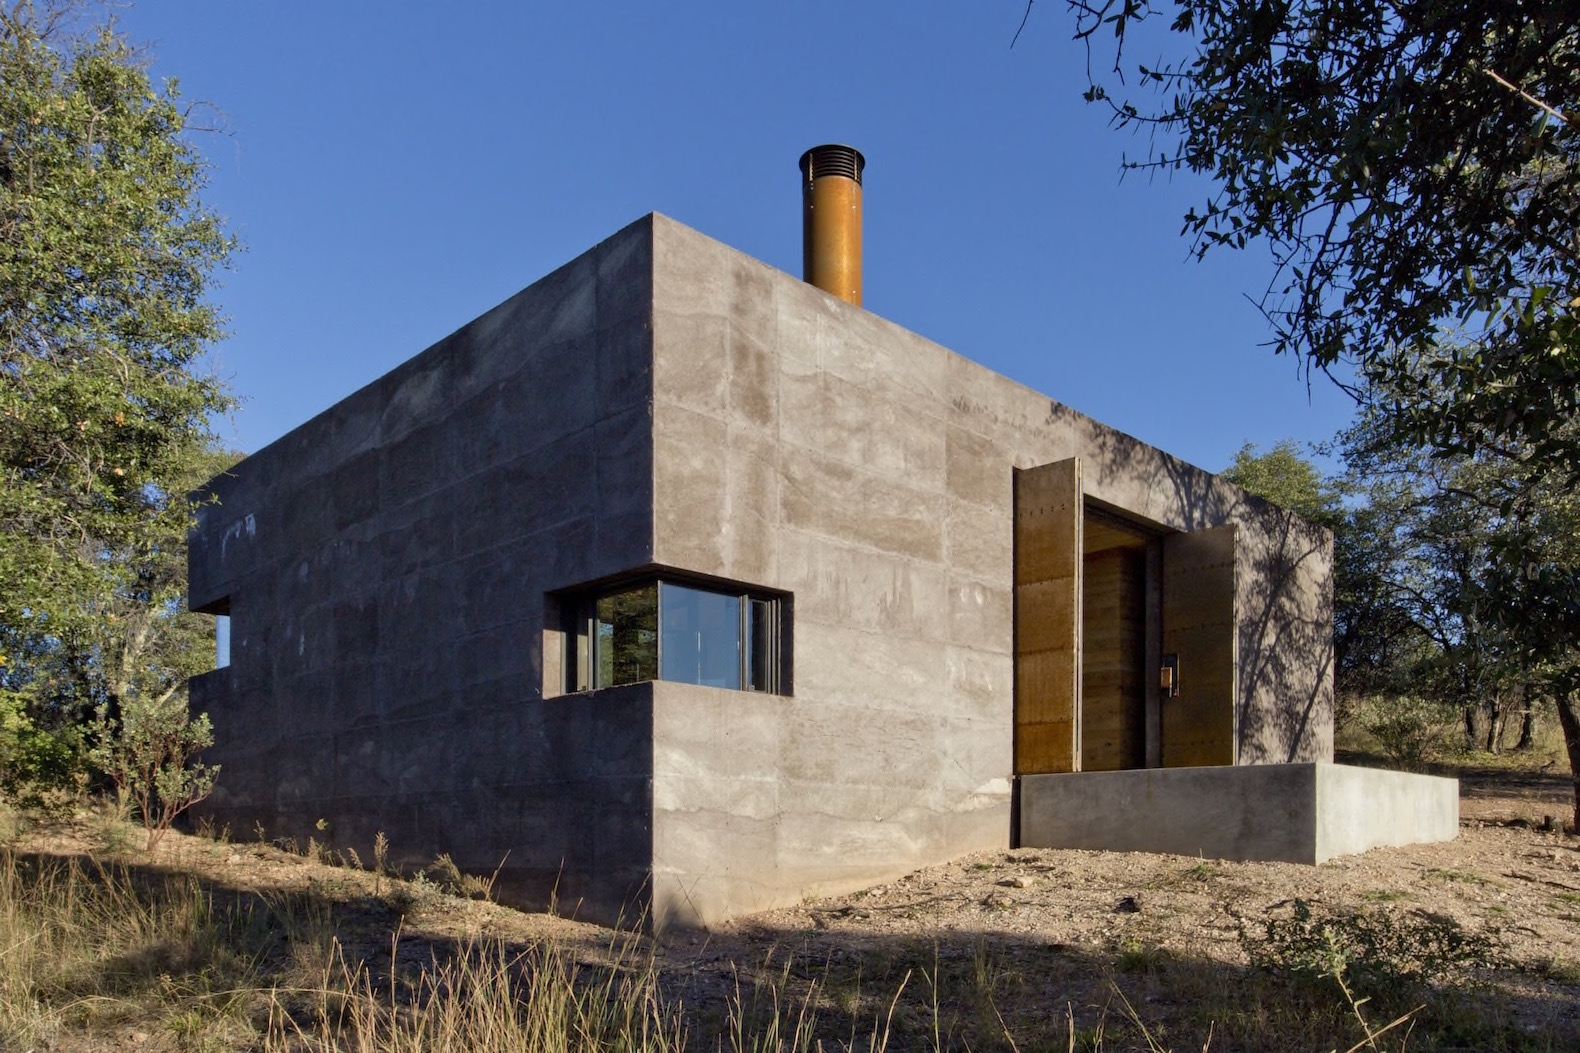 Building off grid homes - Off Grid Bunker Like Vacation Retreat Hides A Surprisingly Chic Interior